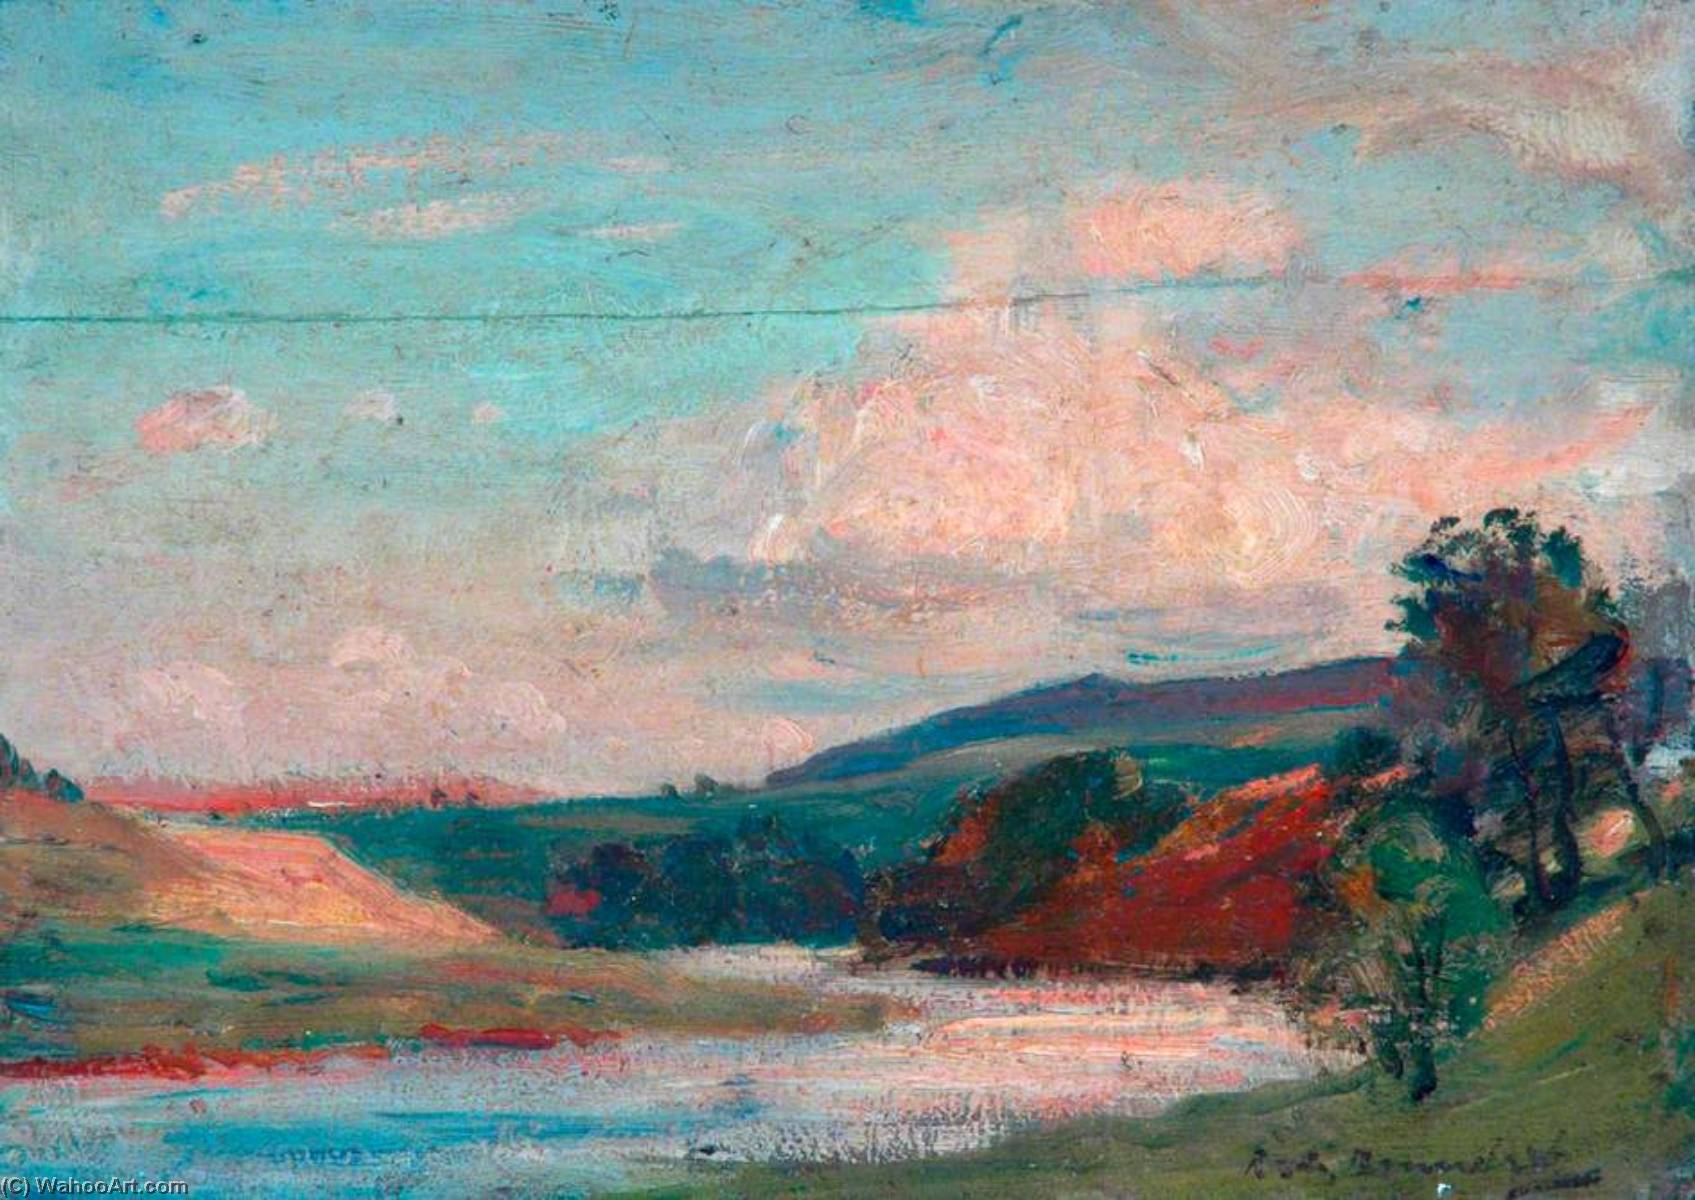 Landscape by Reginald Grange Brundrit | WahooArt.com